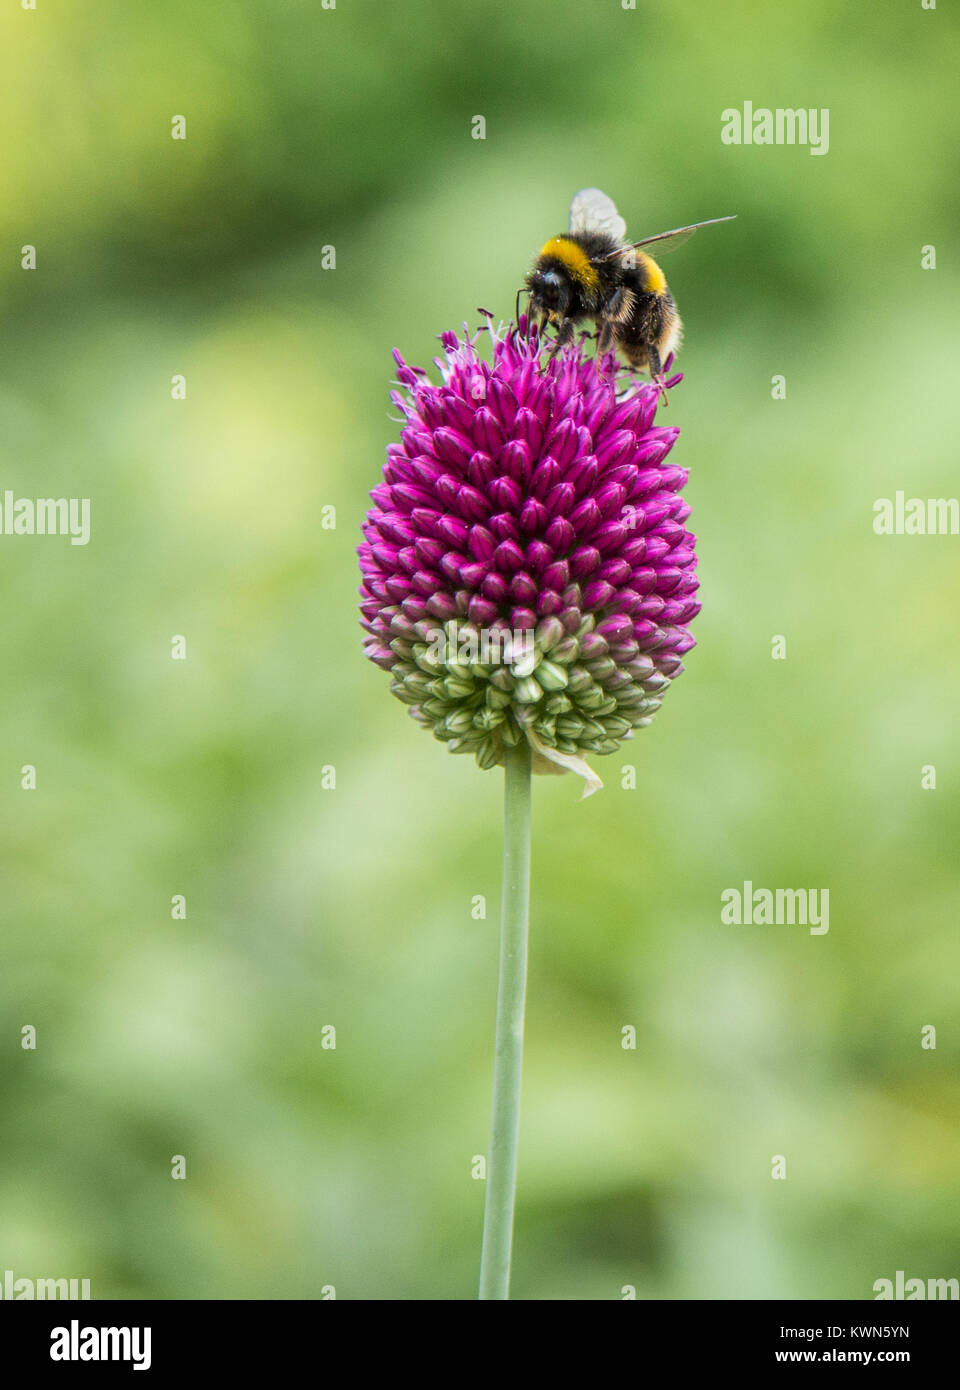 A buff tailed bumble bee collecting pollen from an allium sphaerocephalon head. - Stock Image